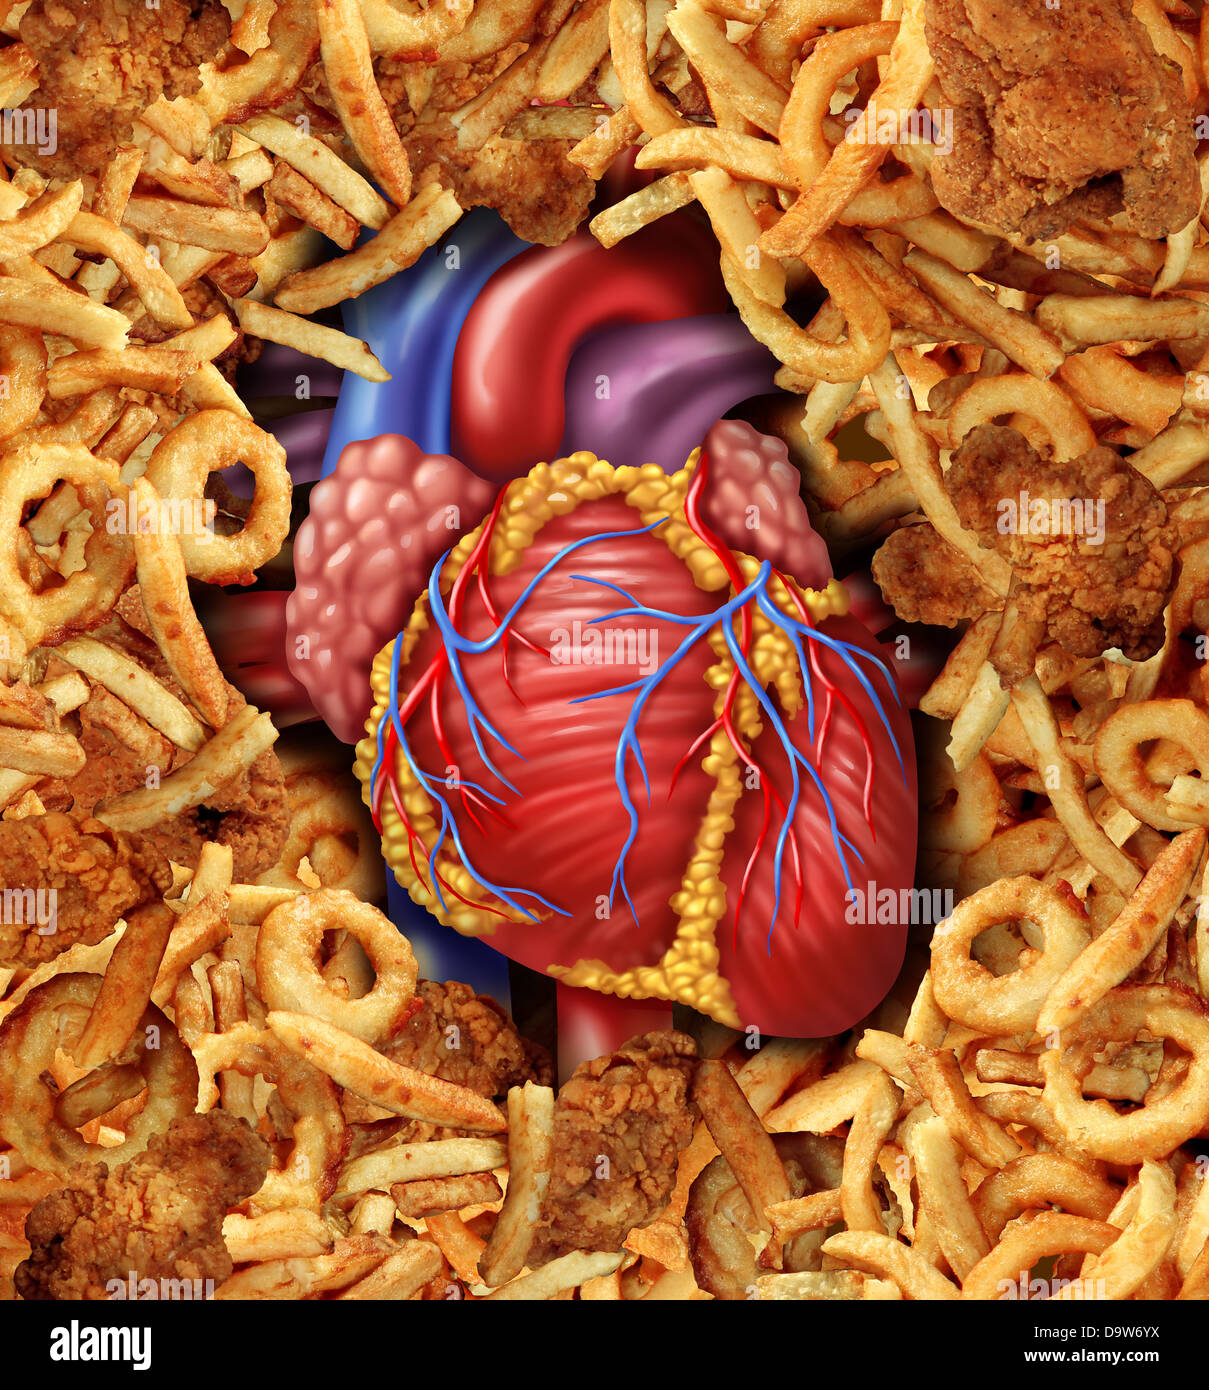 Heart disease food medical health care concept with a human heart organ surrounded by groups of greasy cholesterol - Stock Image